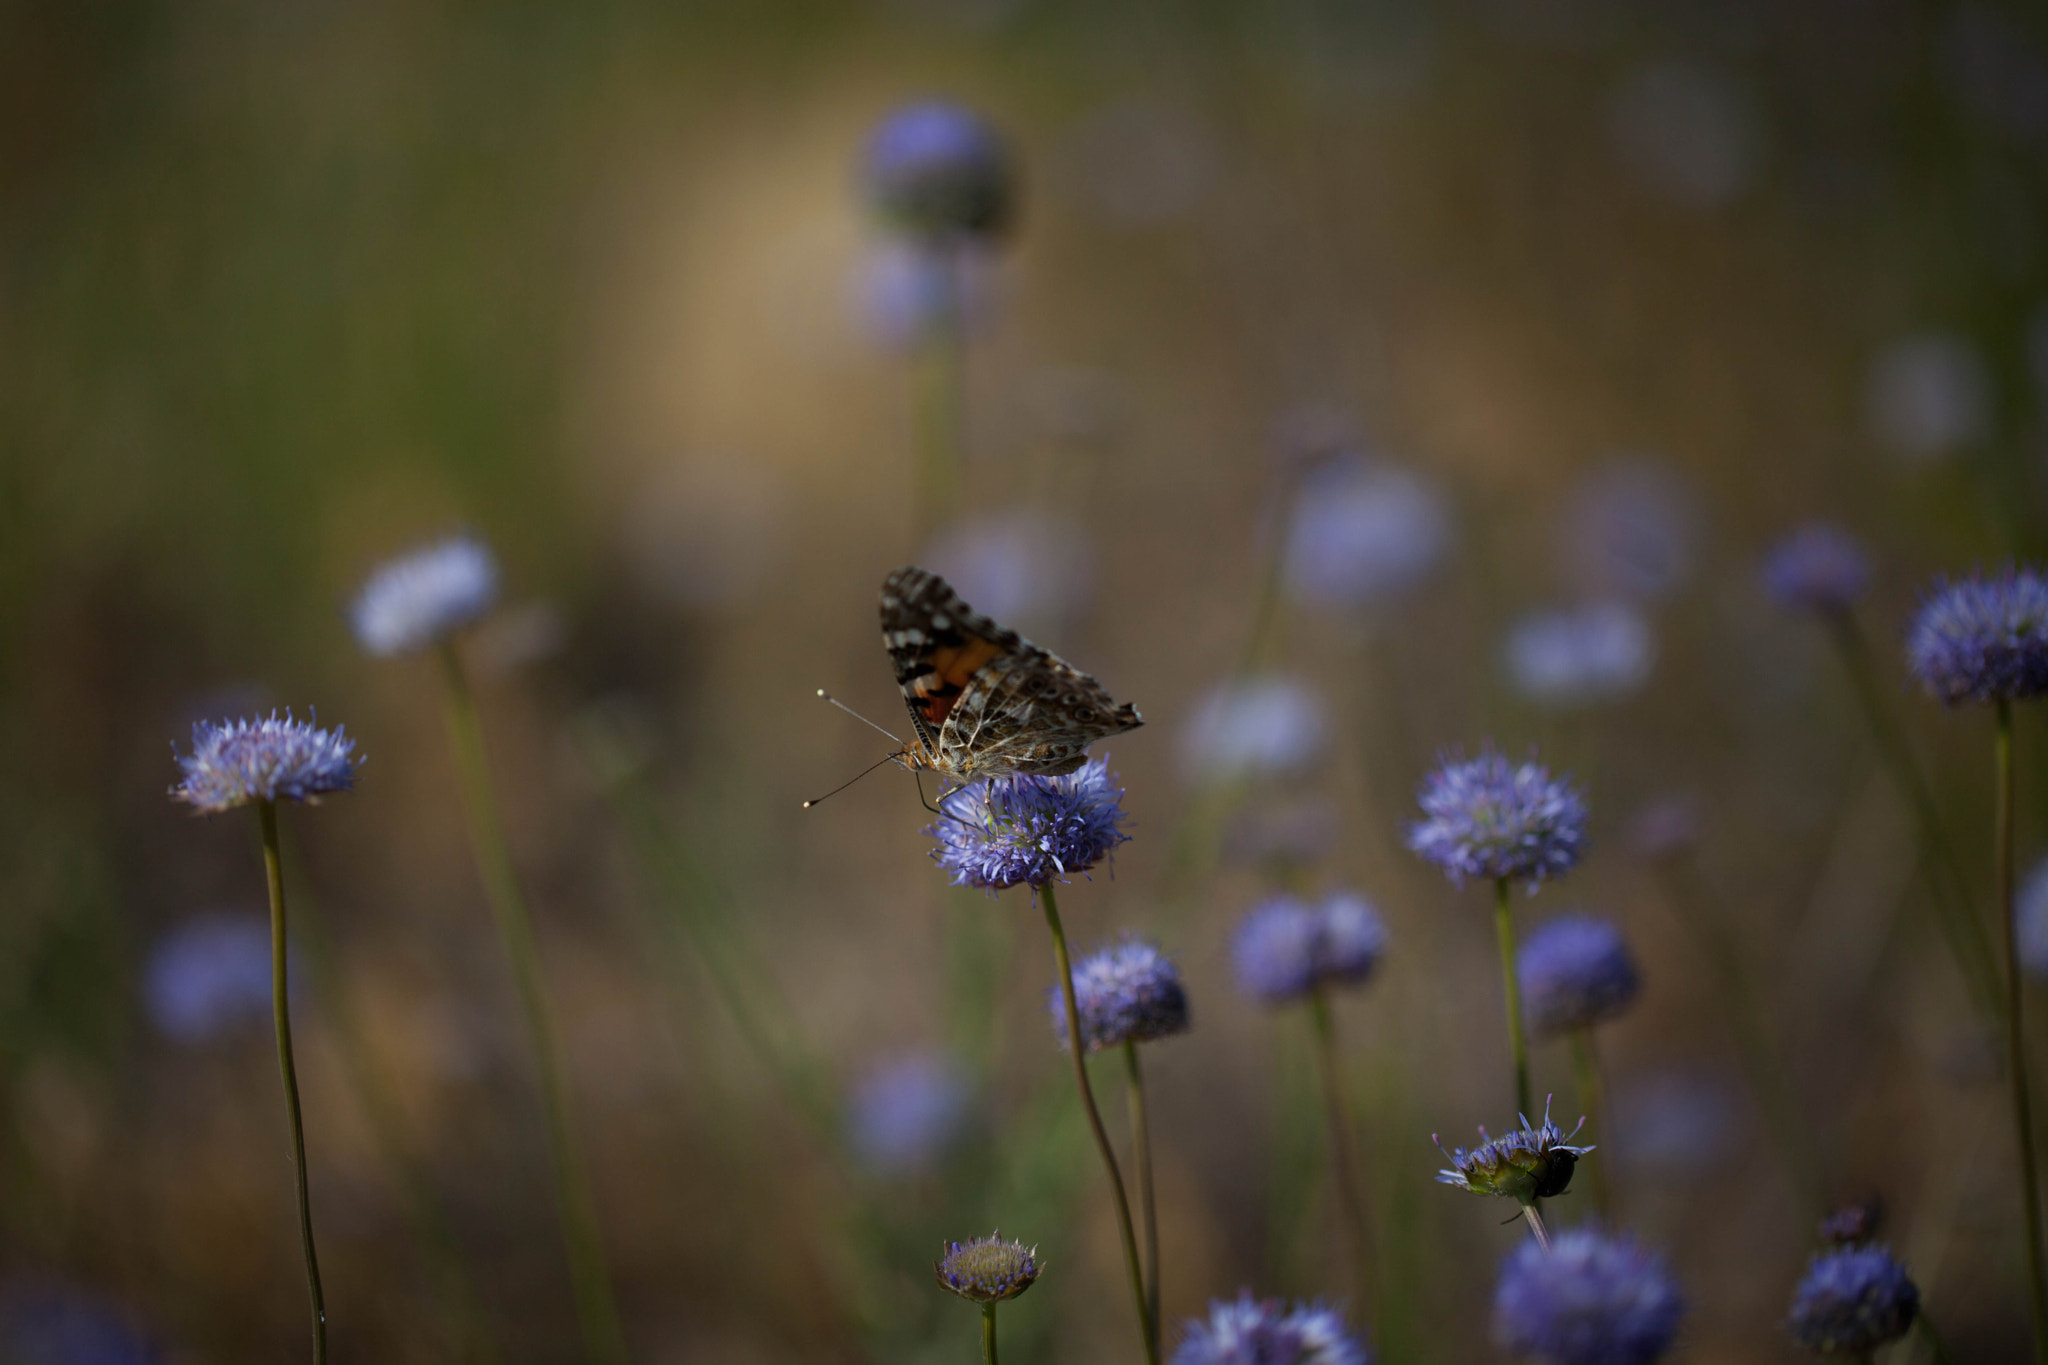 Photograph A butterfly in Valle Del Jerte, Spain by Naomi Turner on 500px